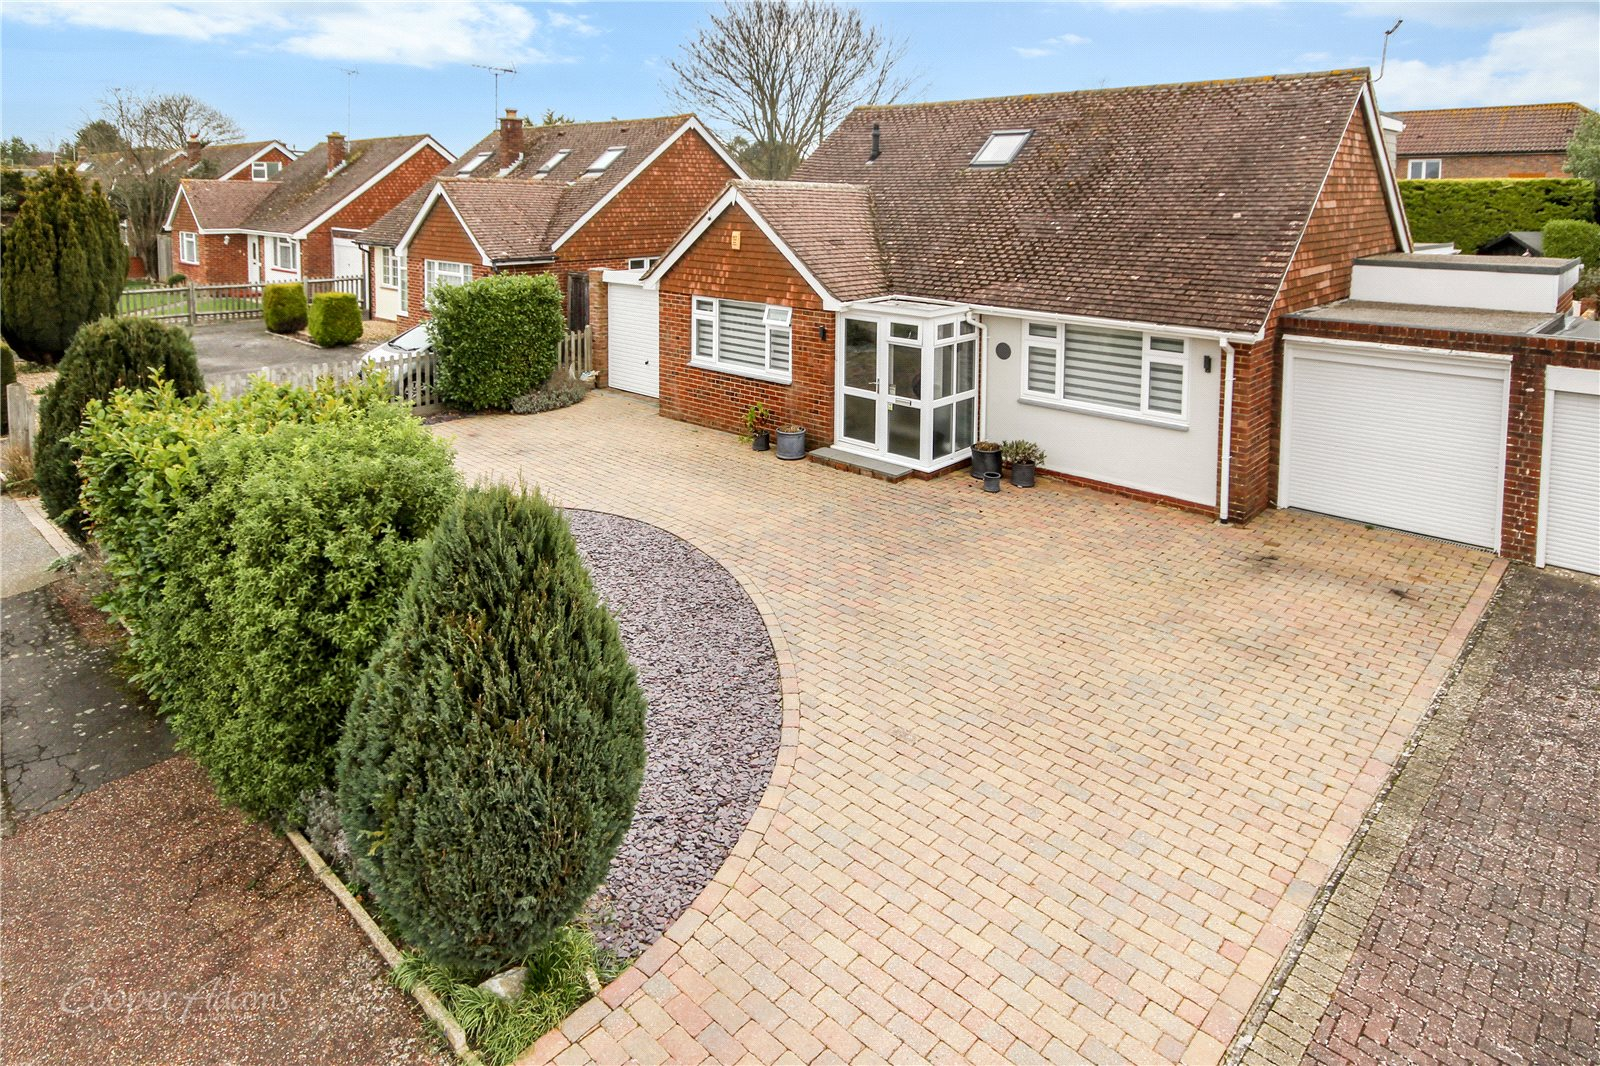 4 bed house for sale in Mill Road Avenue, Angmering, BN16